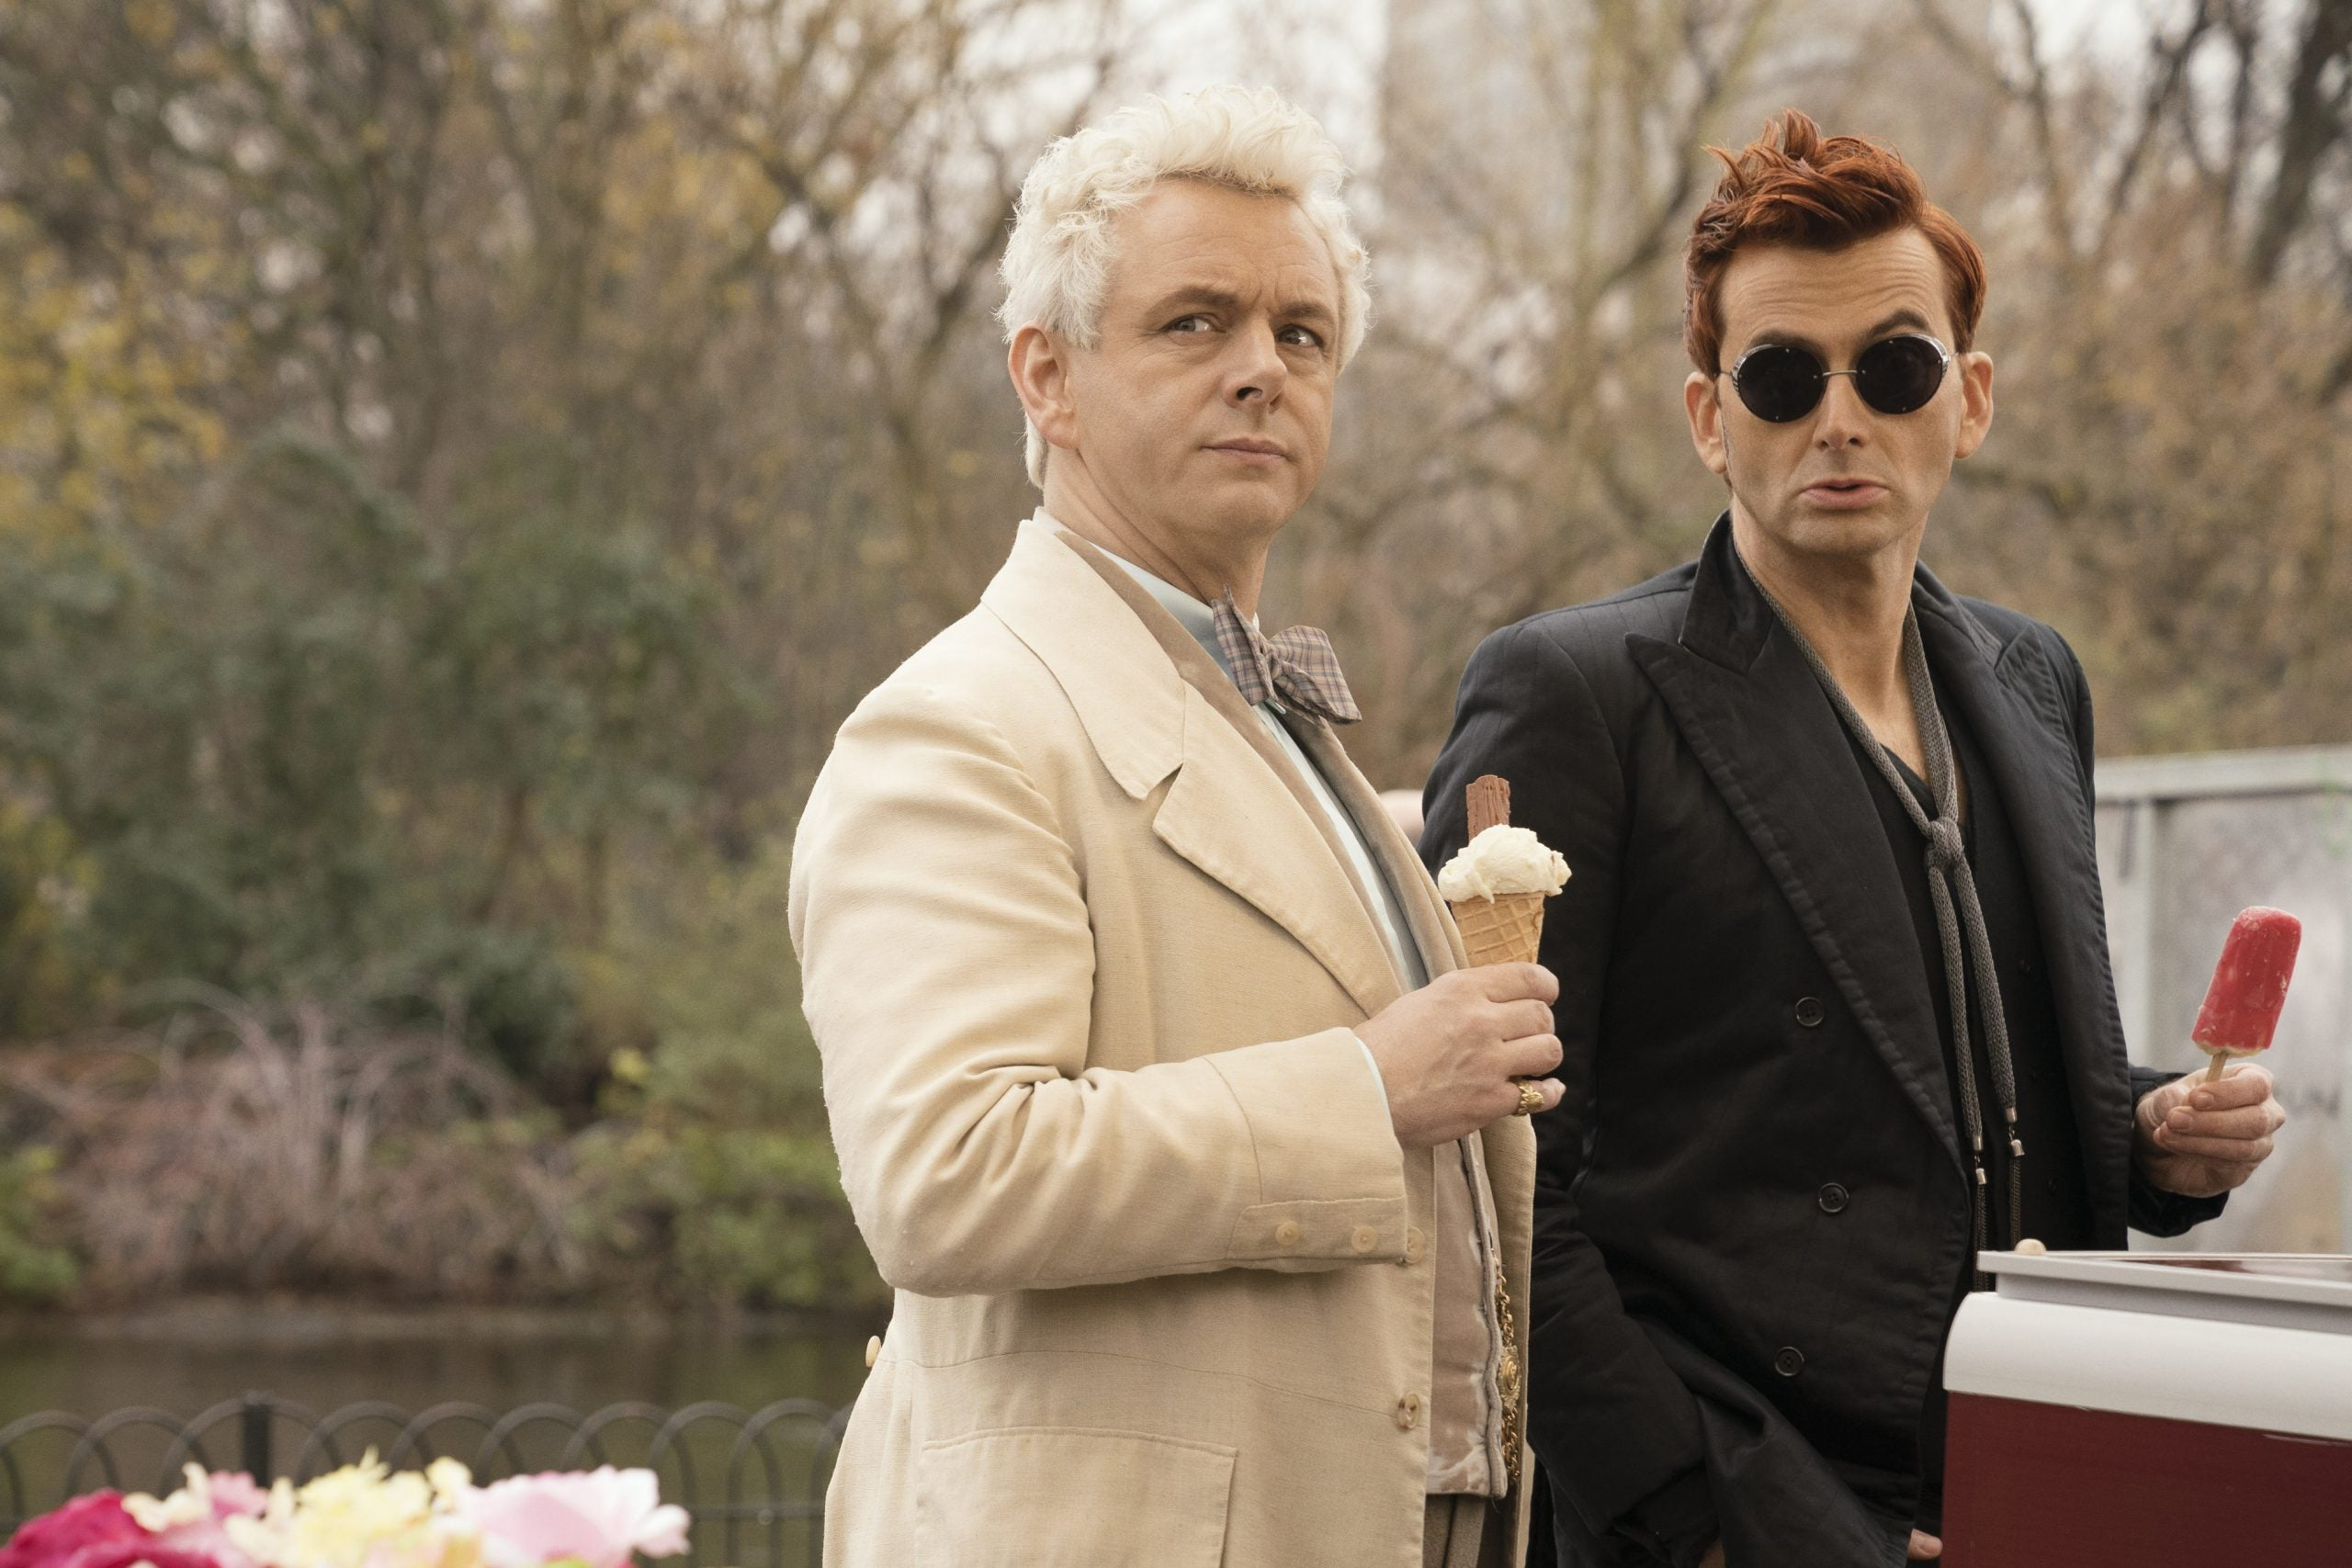 Amazon's Good Omens is exhaustingly arch and terribly twee